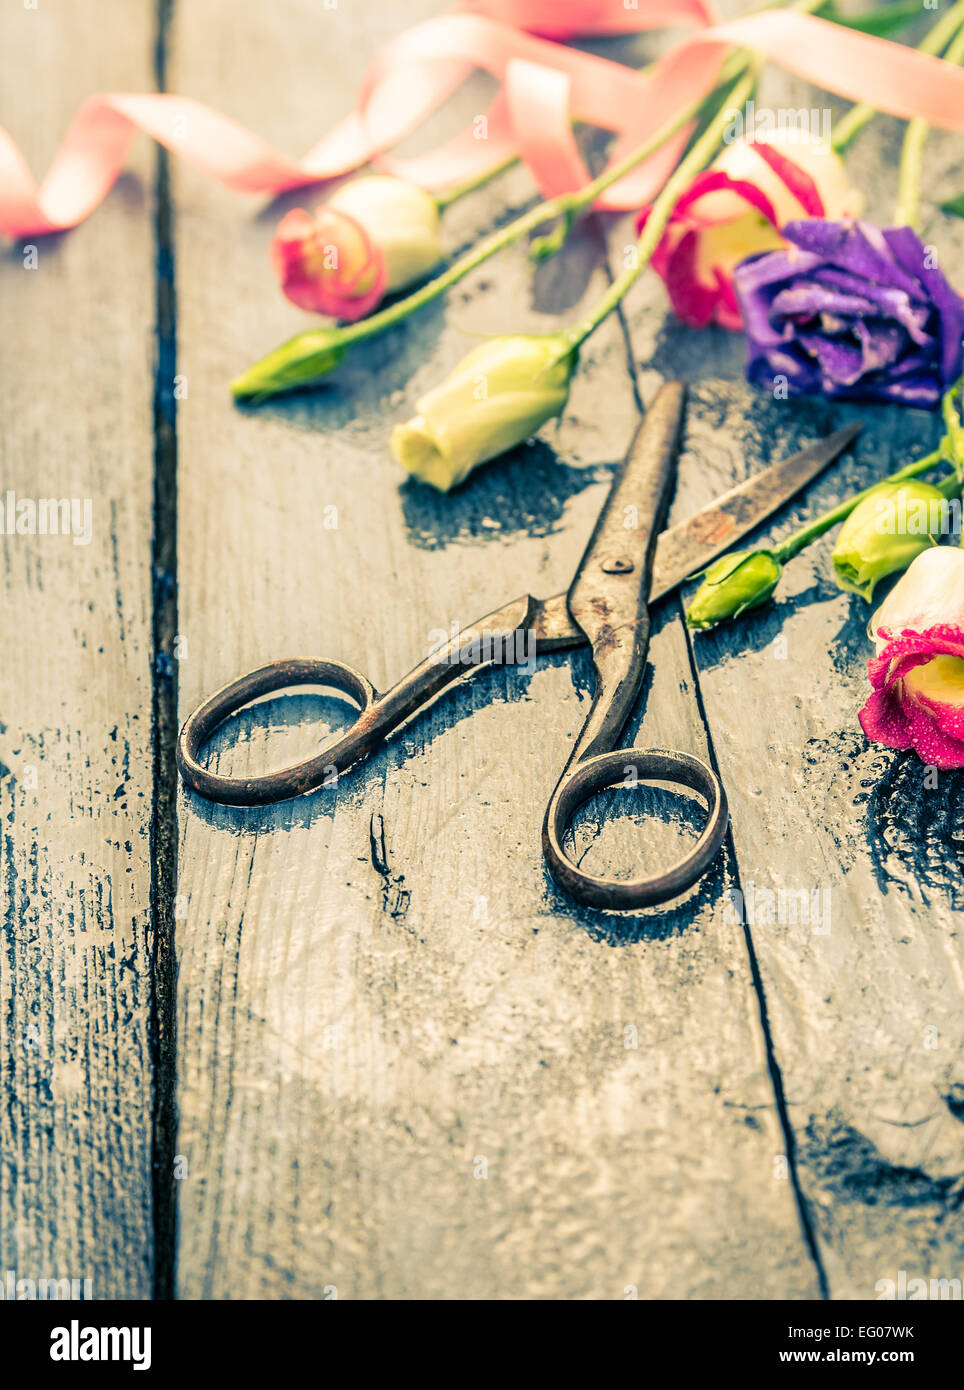 Old scissors with summer flowers on blue wooden table, toning - Stock Image